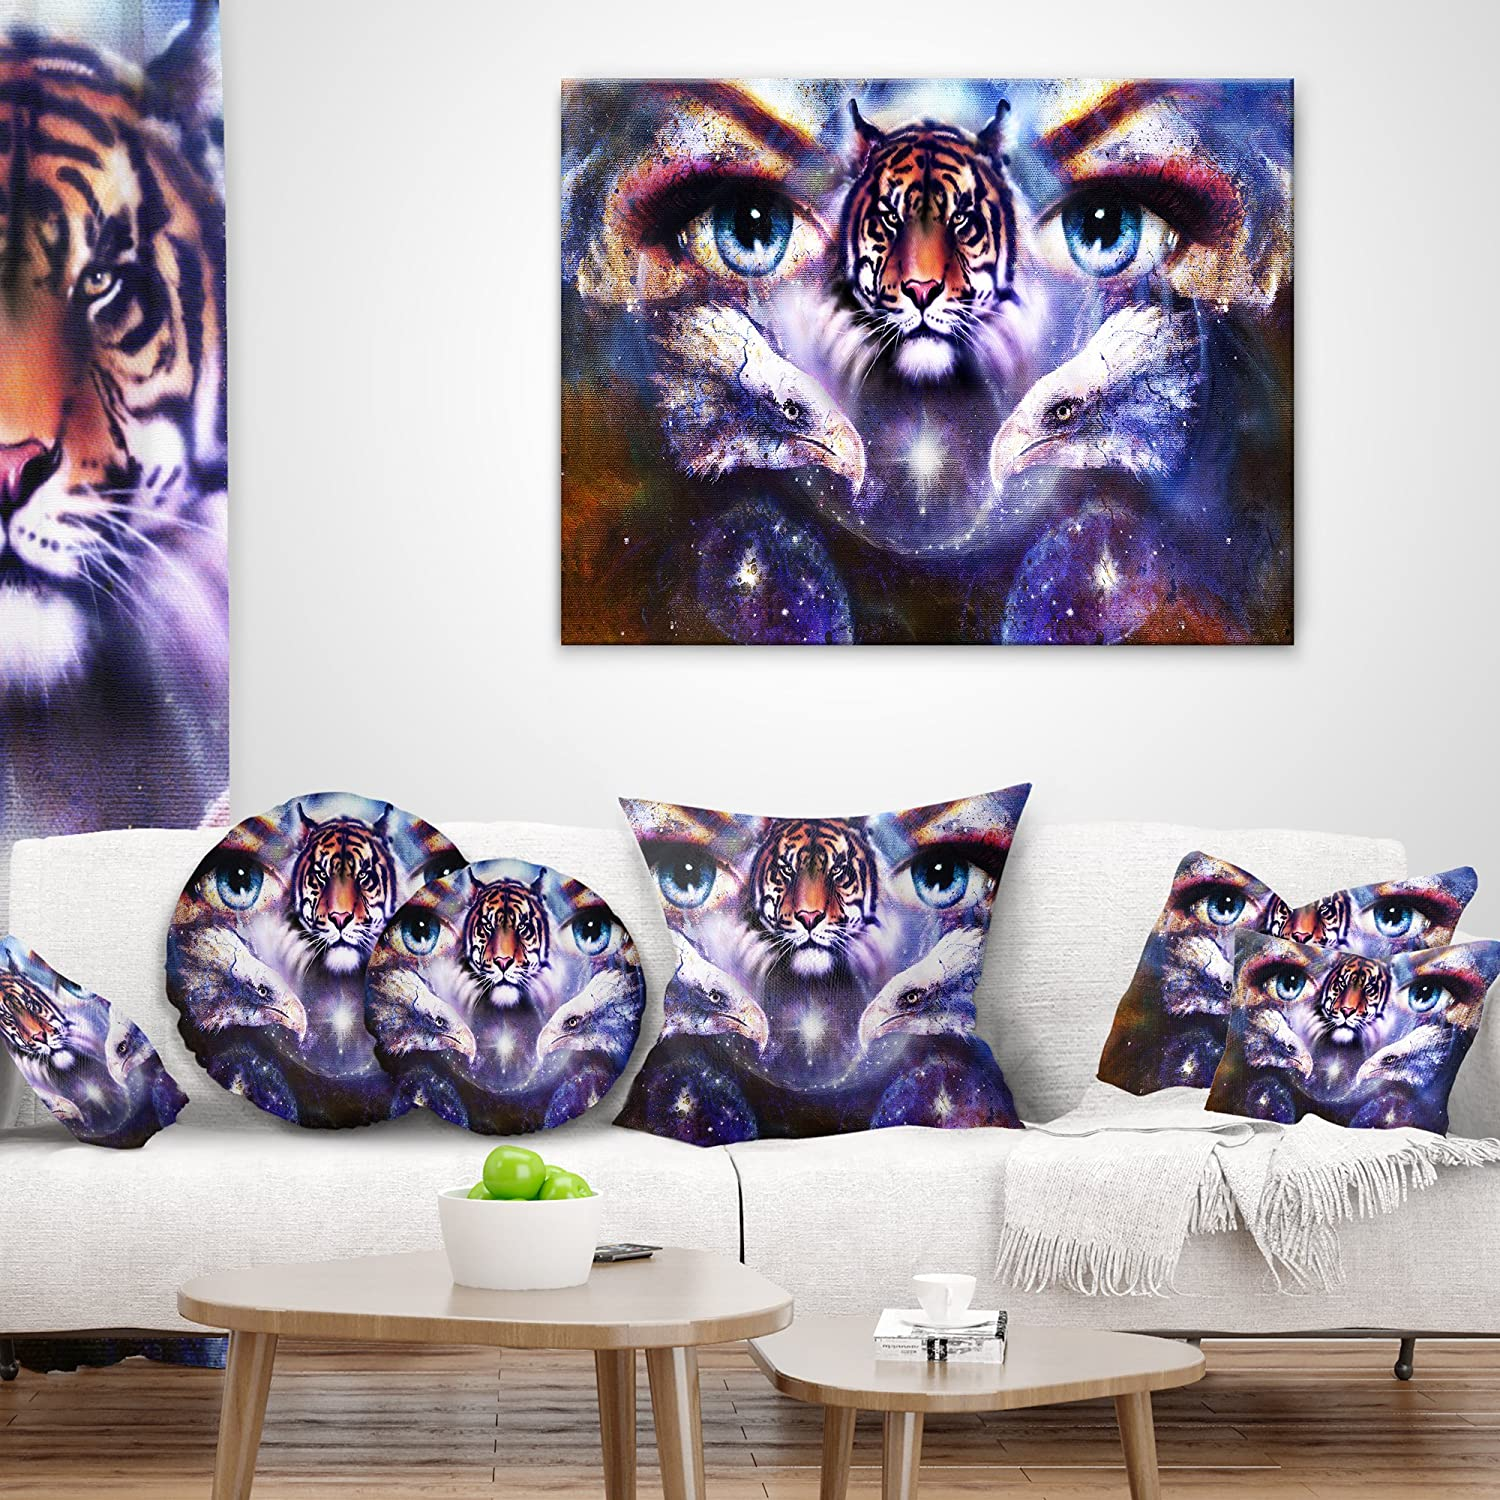 Hypoallergenic Pillow Insert x 18 in Cushion Cover Printed on Both Side Sofa 18 in Designart CU6087-18-18 Tiger Eagles and Woman Eyes Collage Animal Throw Cushion Pillow Cover for Living Room